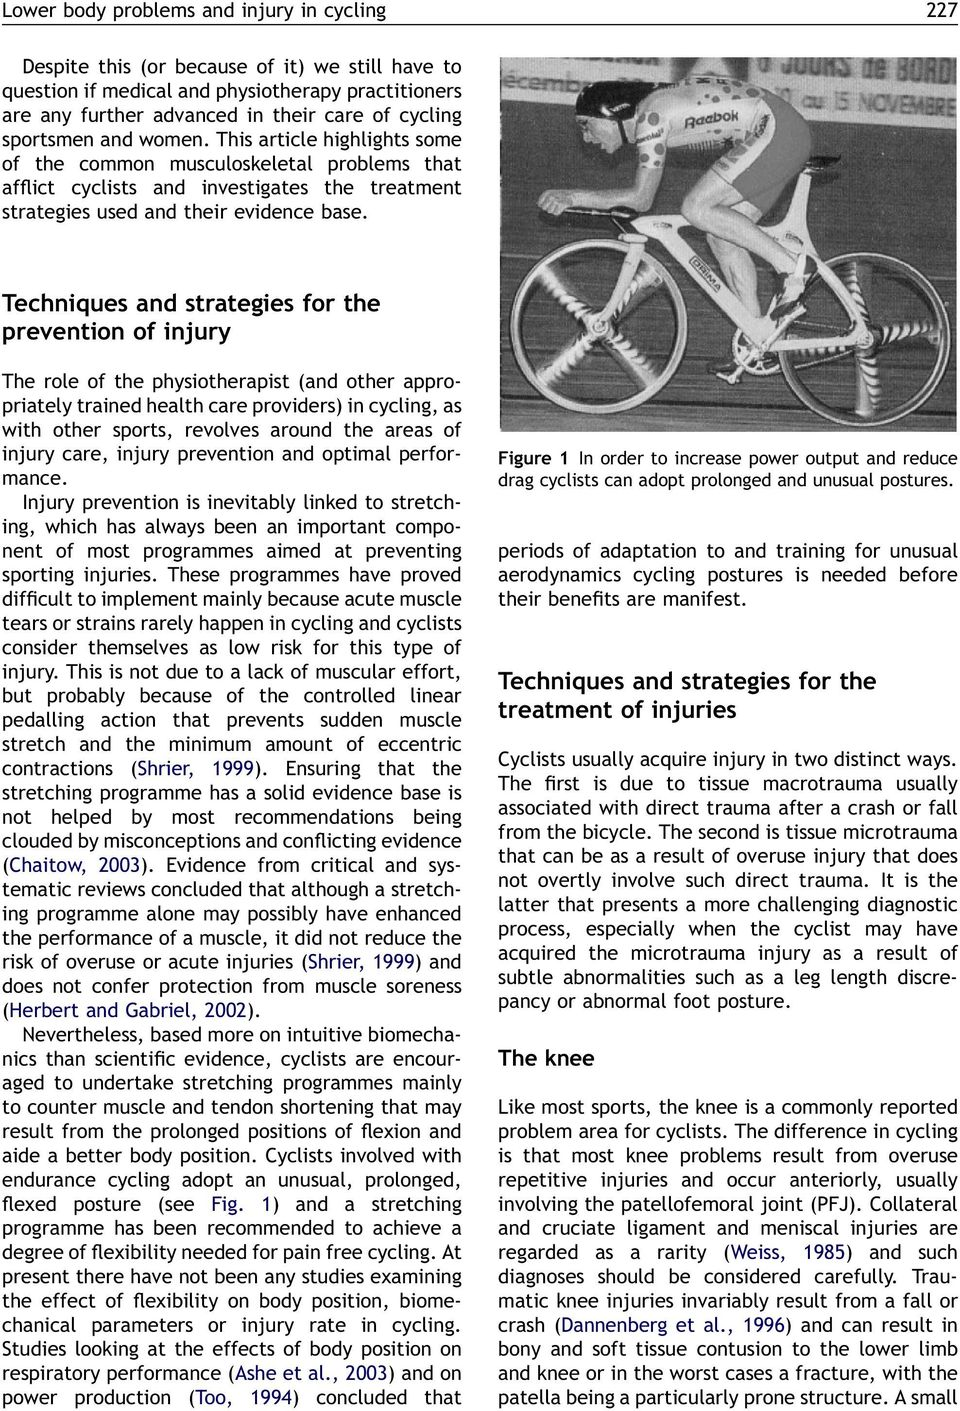 Techniques and strategies for the prevention of injury The role of the physiotherapist (and other appropriately trained health care providers) in cycling, as with other sports, revolves around the